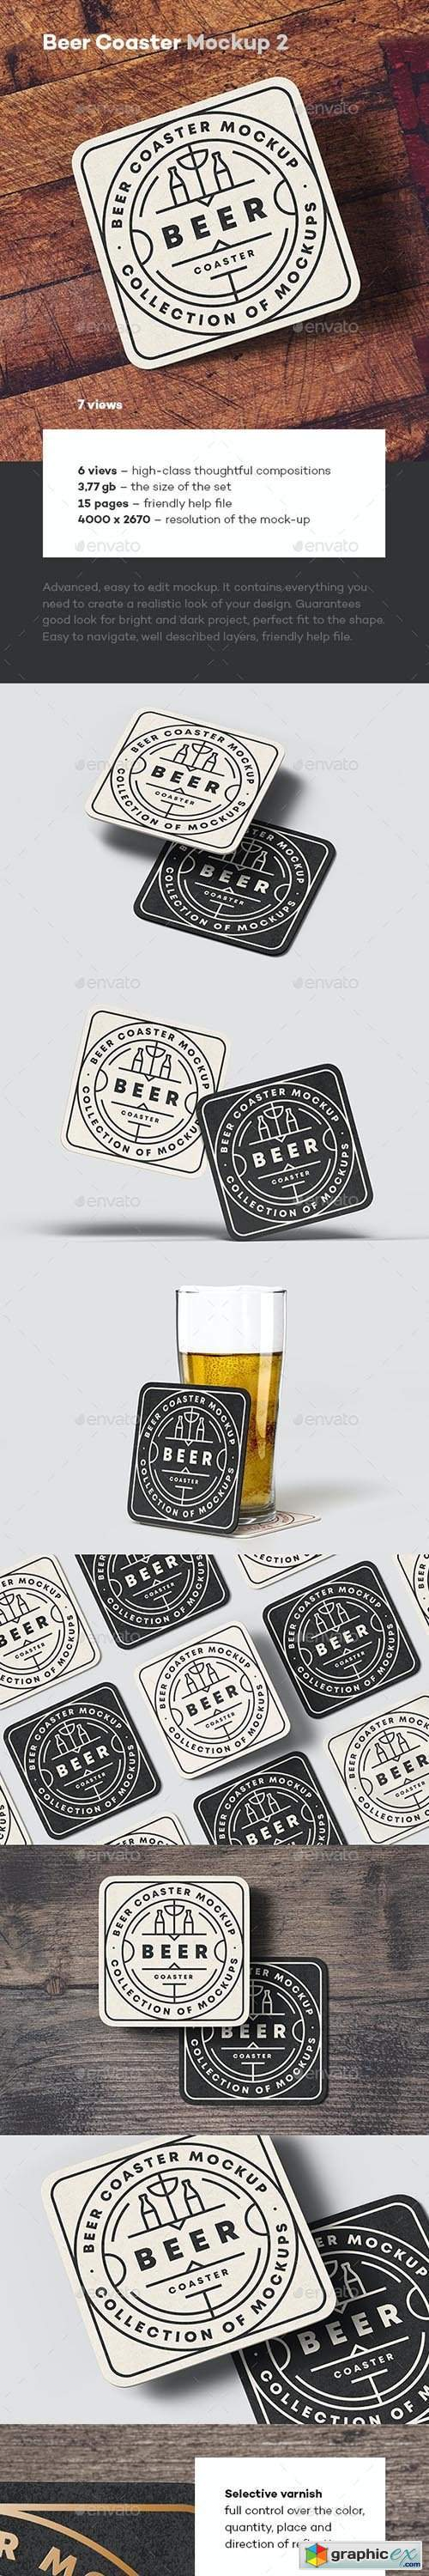 Beer Coaster Mock-up 2